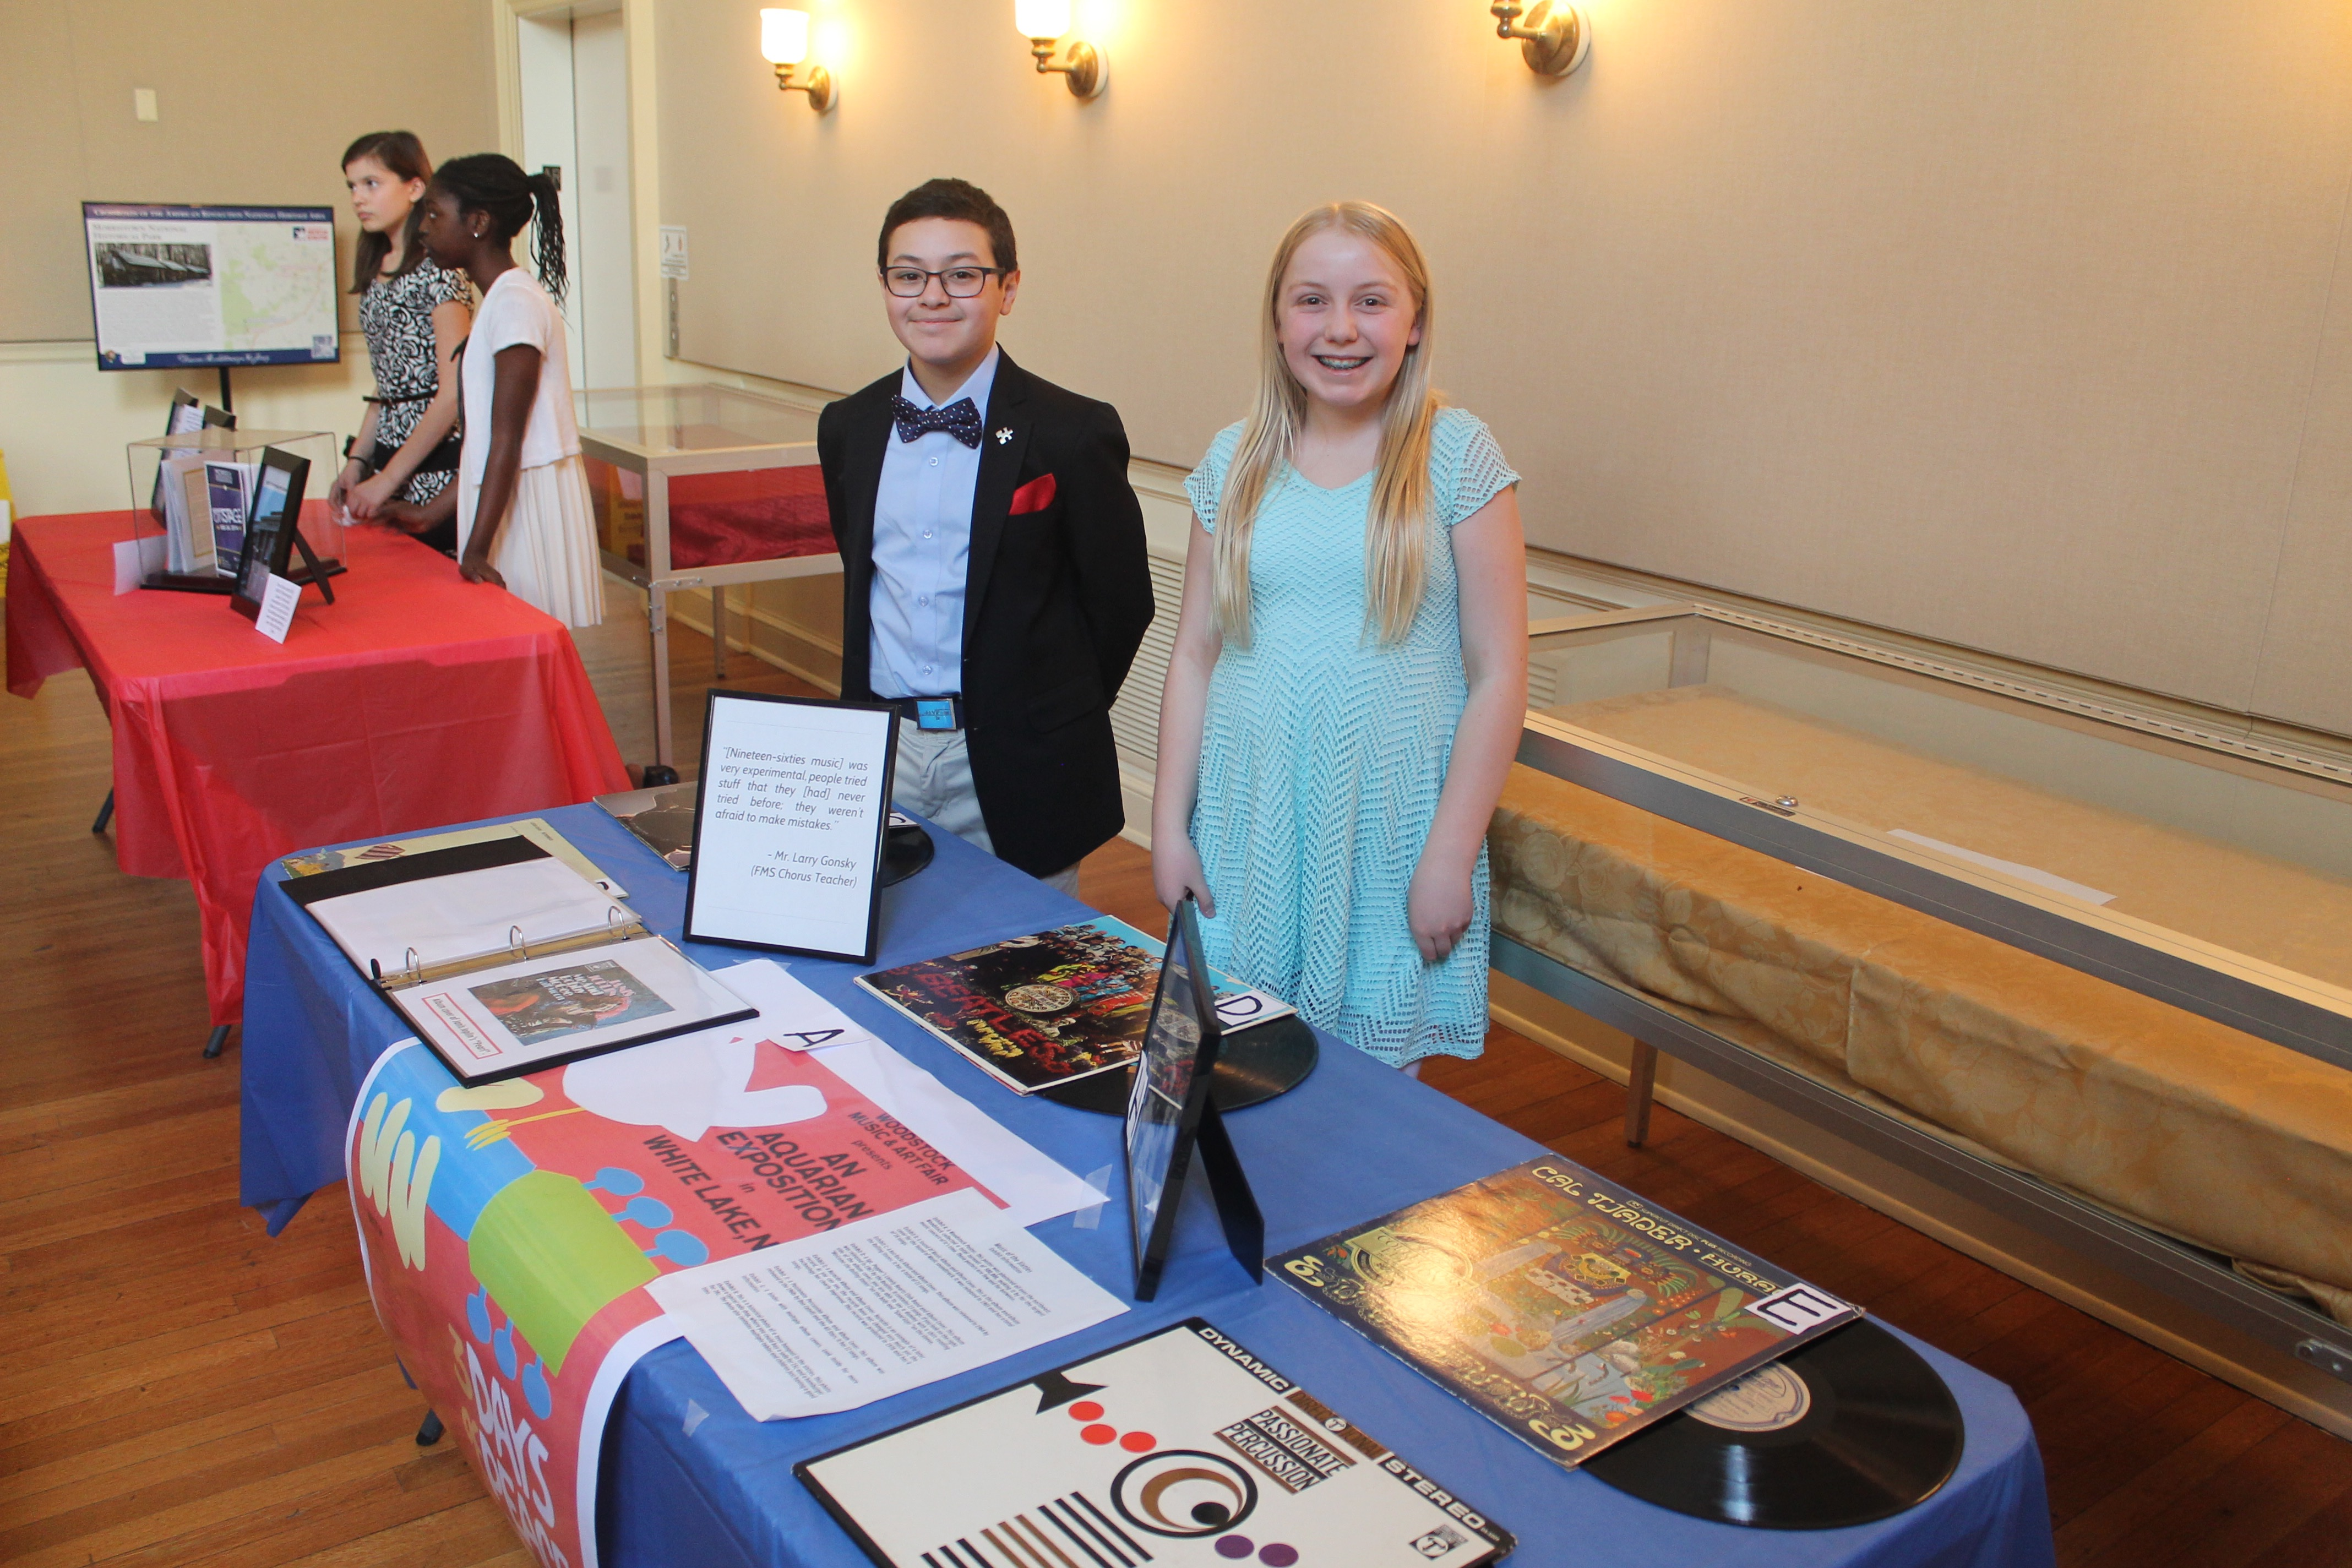 Frelinghuysen Family - The future is bright and the past is present frelinghuysen middle school students give live to the morristown historical society